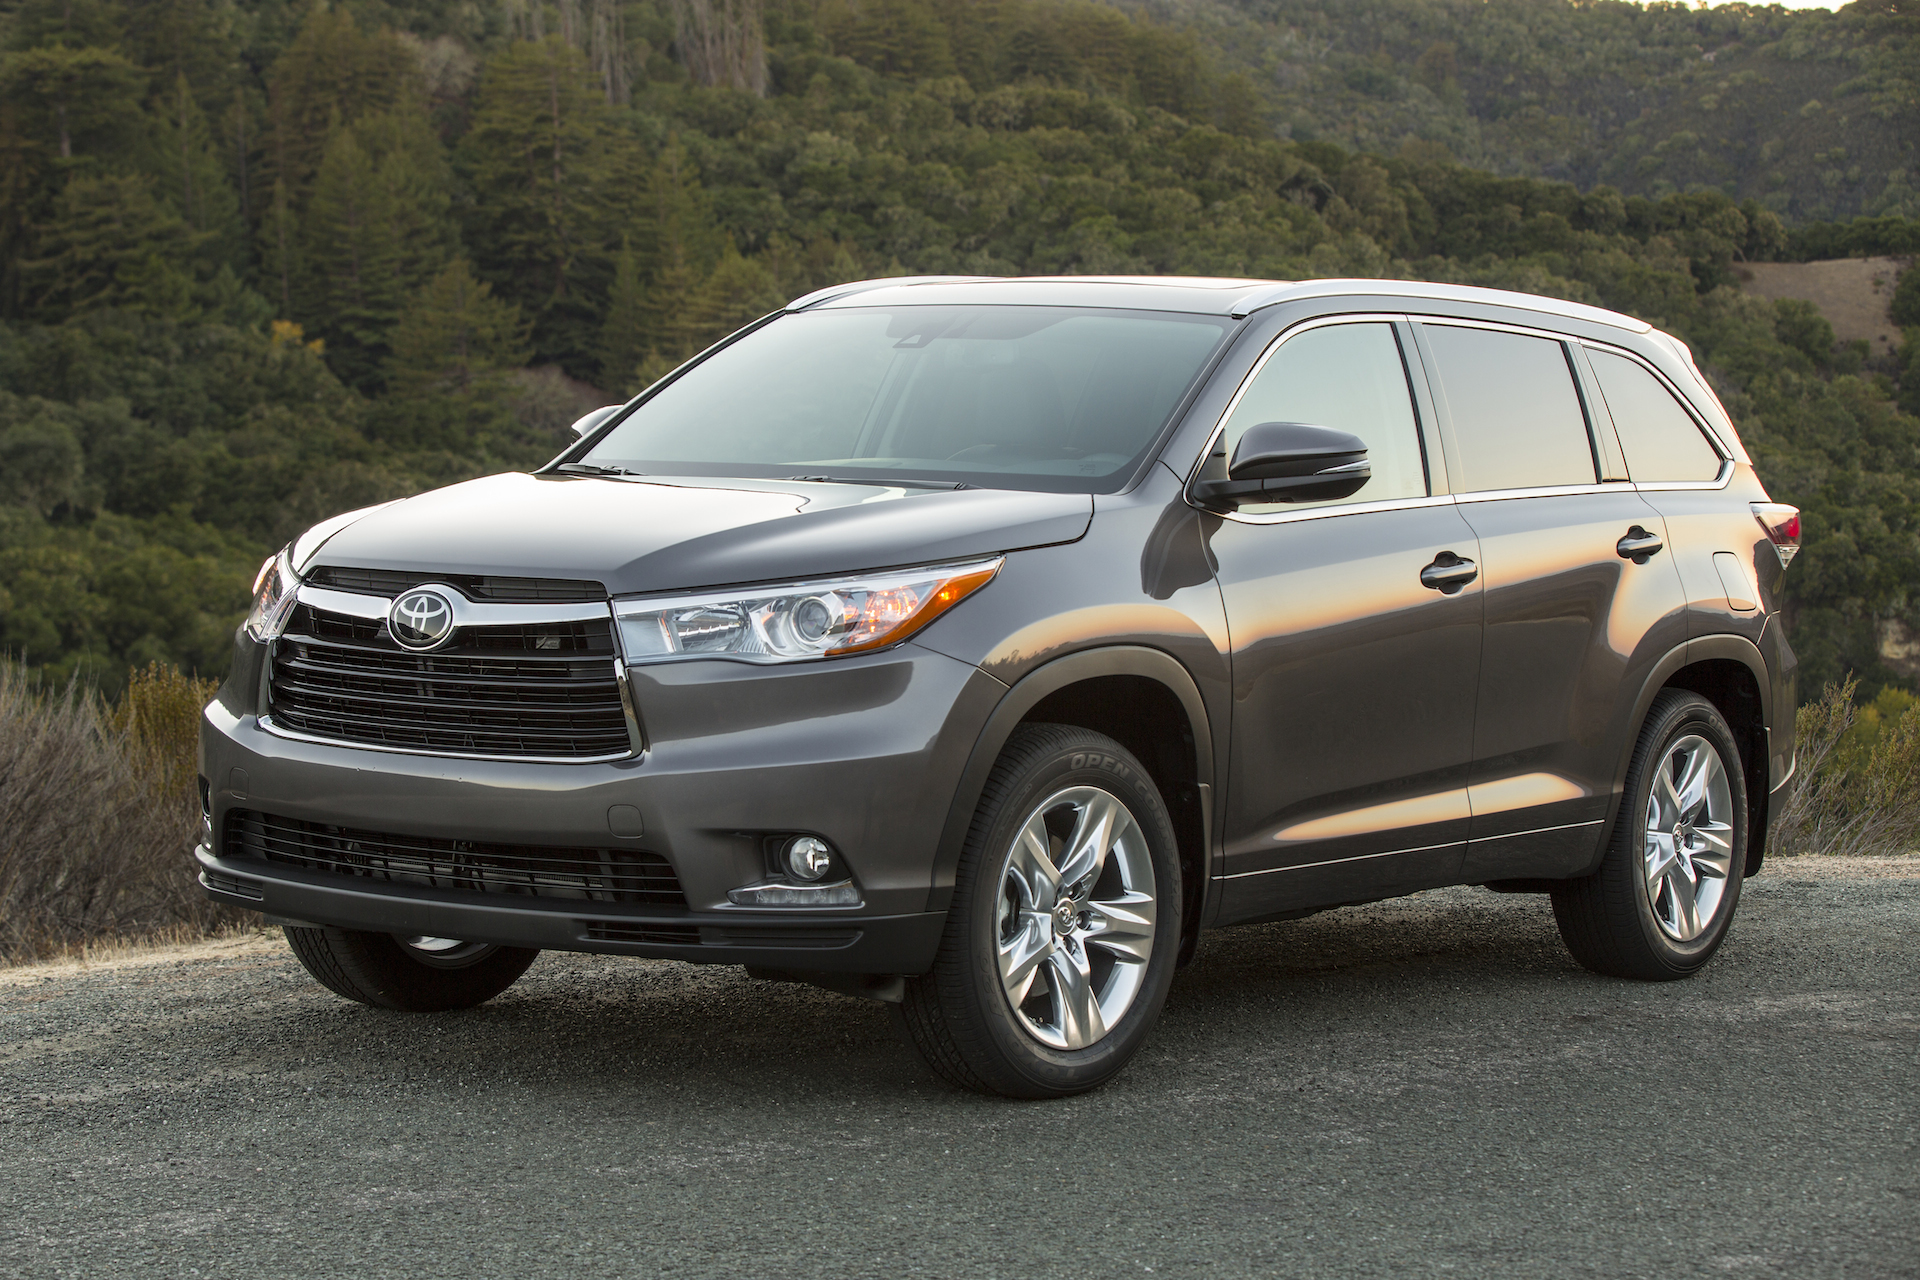 2014 toyota highlander video road test 2014 toyota highlander video road test